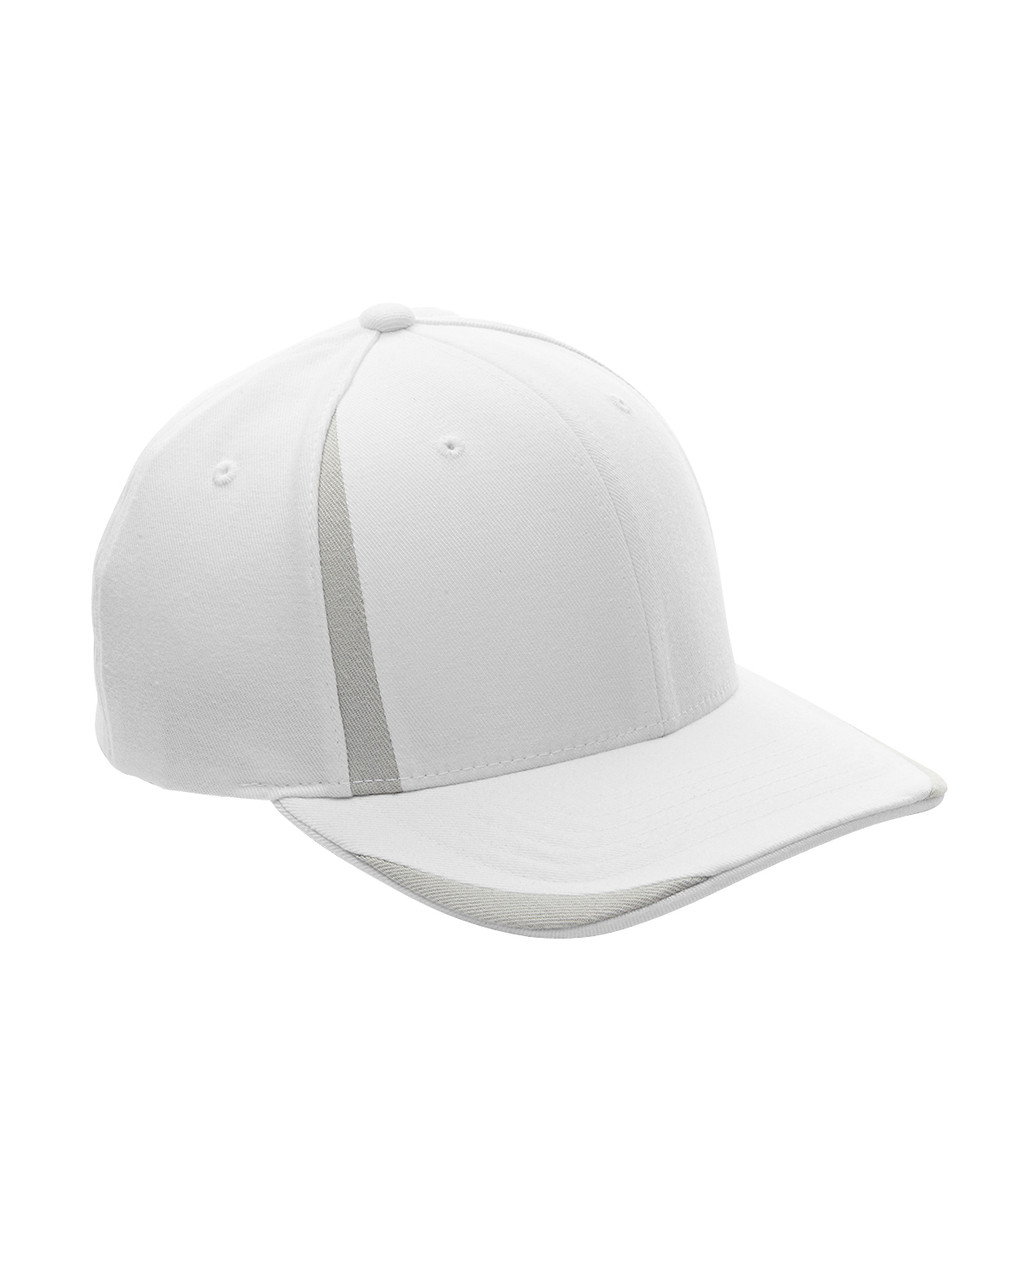 White/Silver - ATB102 Flexfit for Team 365 Pro-Formance Front Sweep Cap